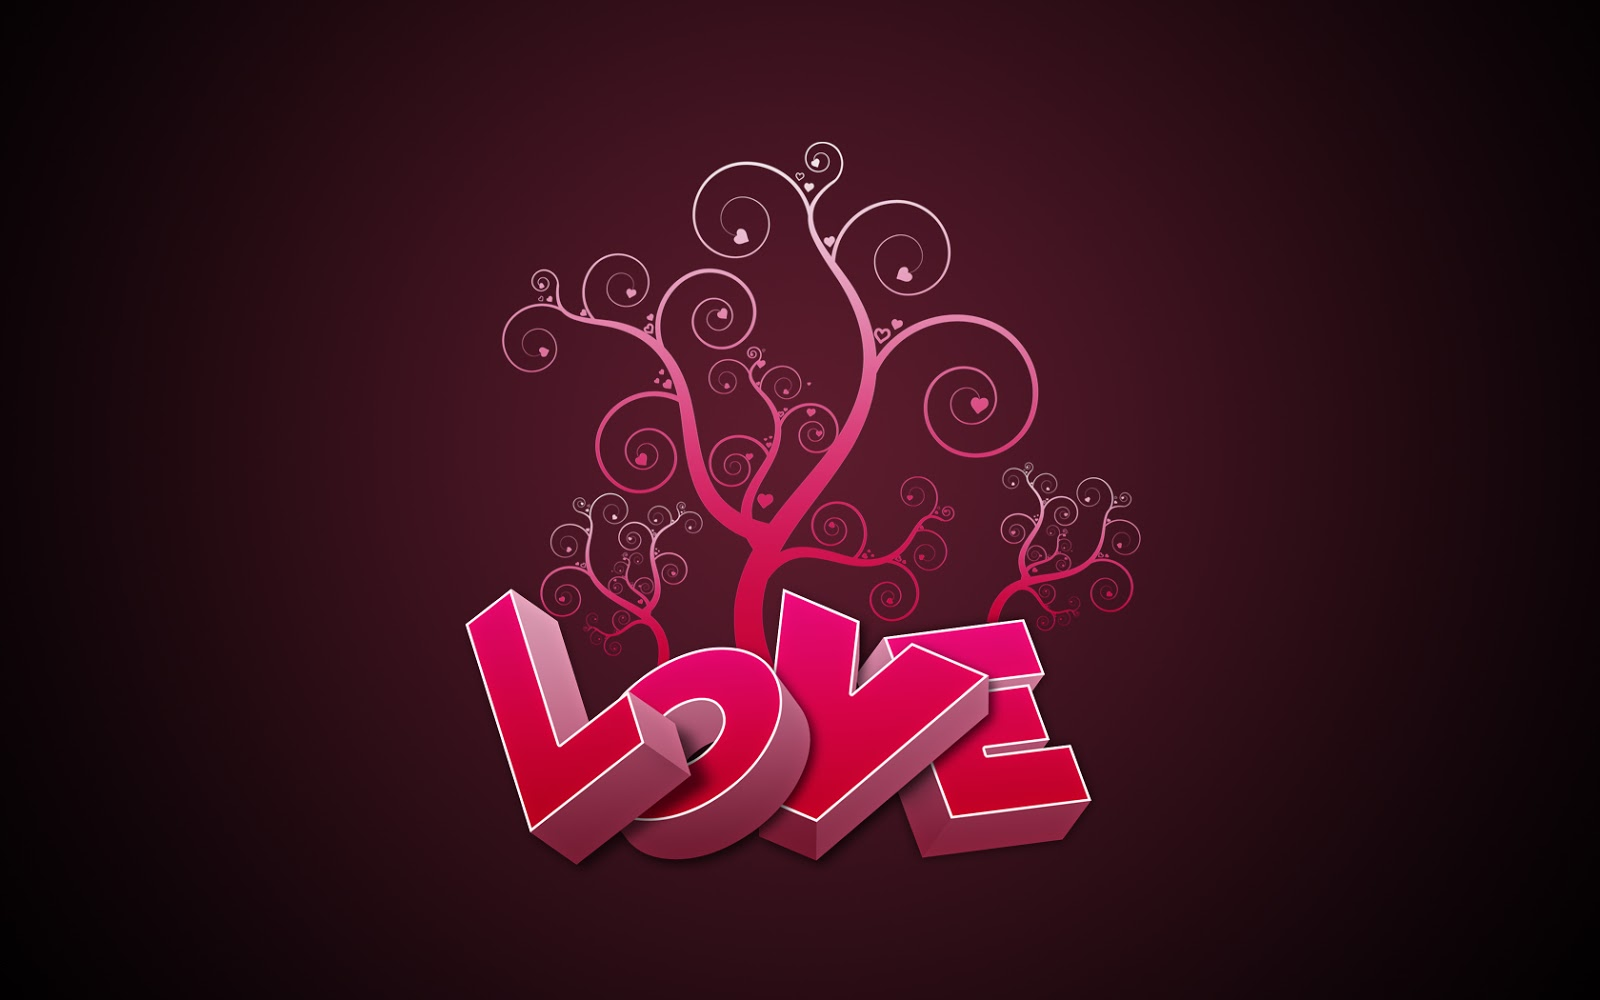 Love paar wallpaper hd